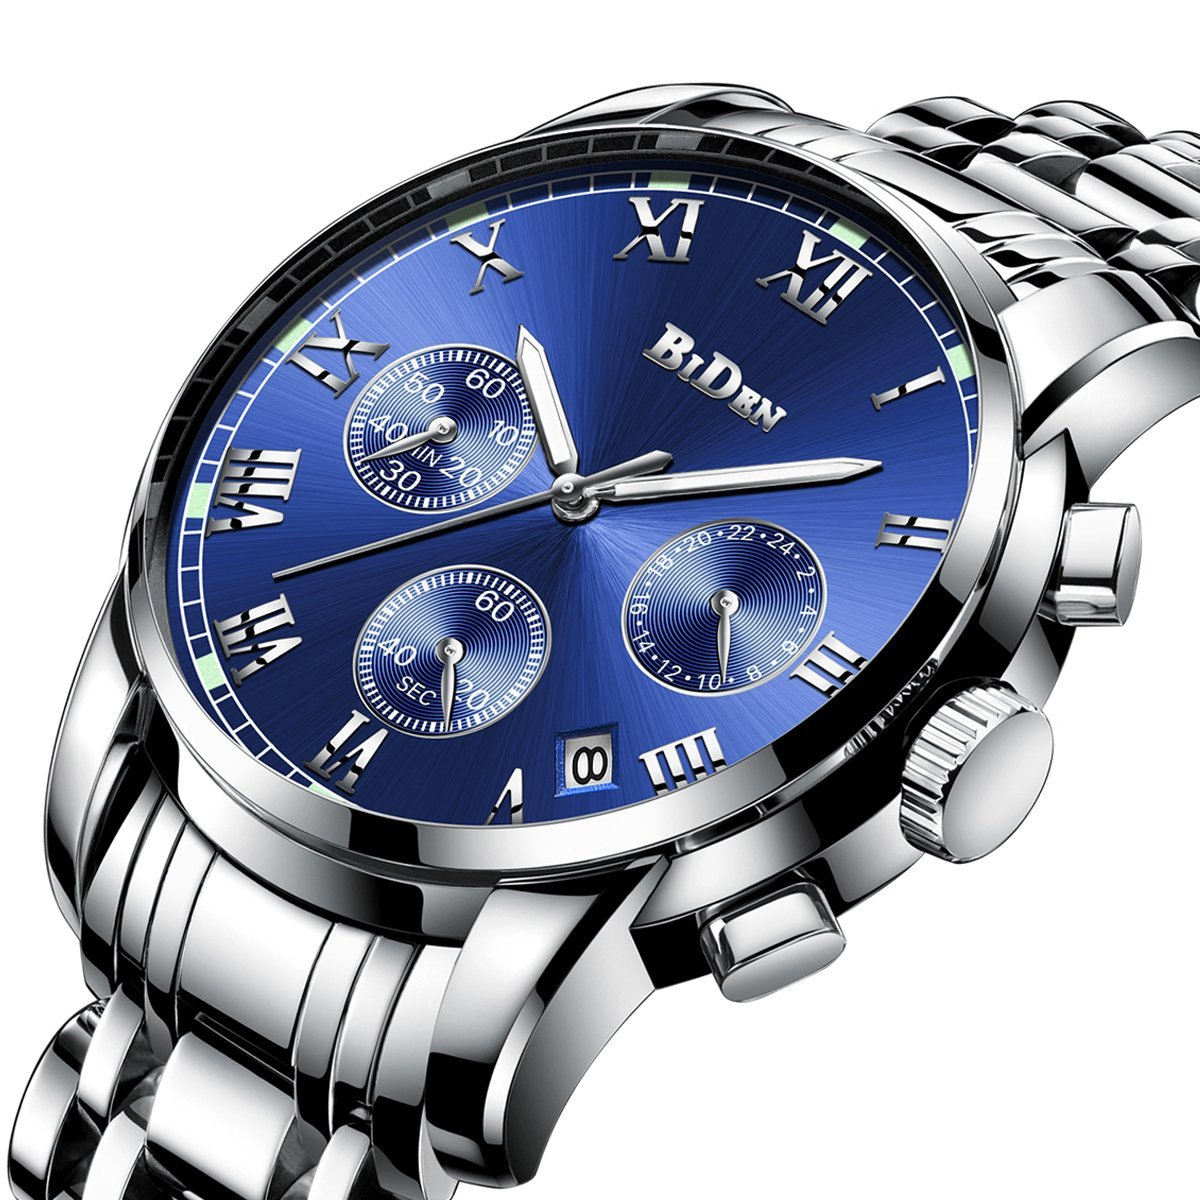 Watches,Mens Watches Luxury Business Fashion Chronograph Stainless Steel Waterproof Classic Analog Quartz Watch